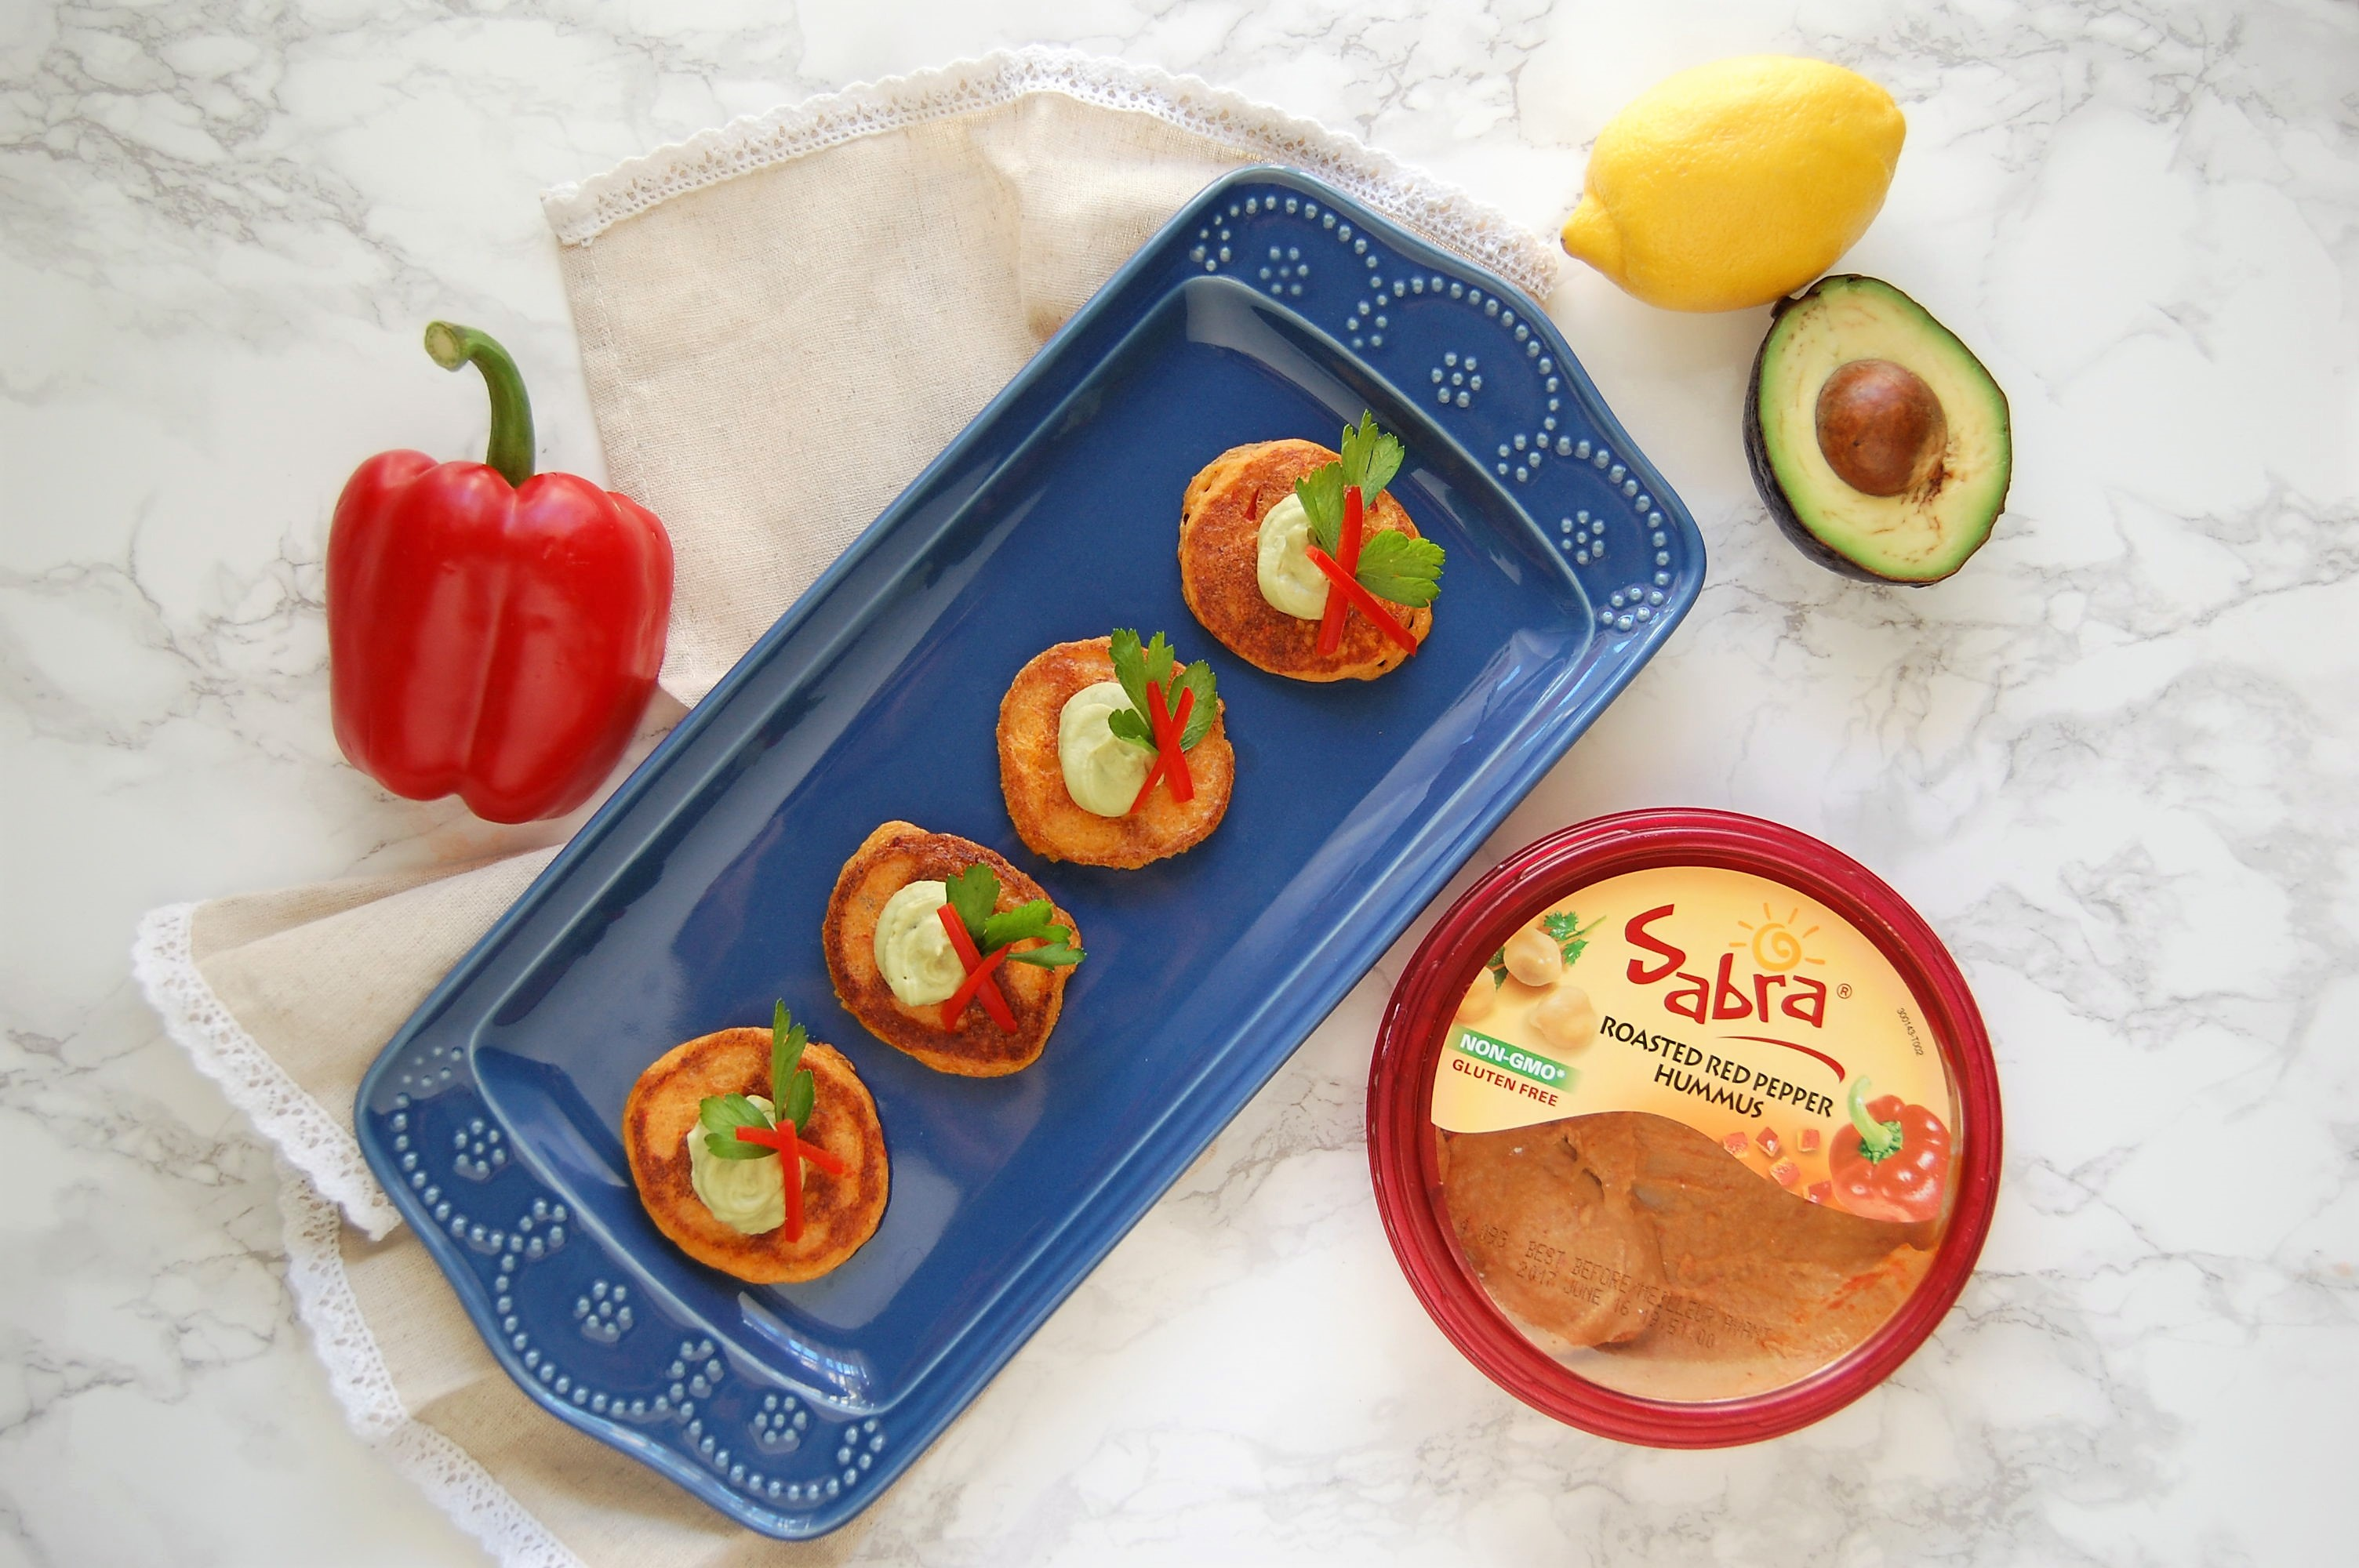 #ad May 13th is National Hummus Day, so why not throw a party with these Gluten Free Hummus Poppers with Whipped Avocado Hummus? They are crisp, light, airy, and full of so much flavor. Best yet? They're awesomely customizable to your favorite Sabra hummus!